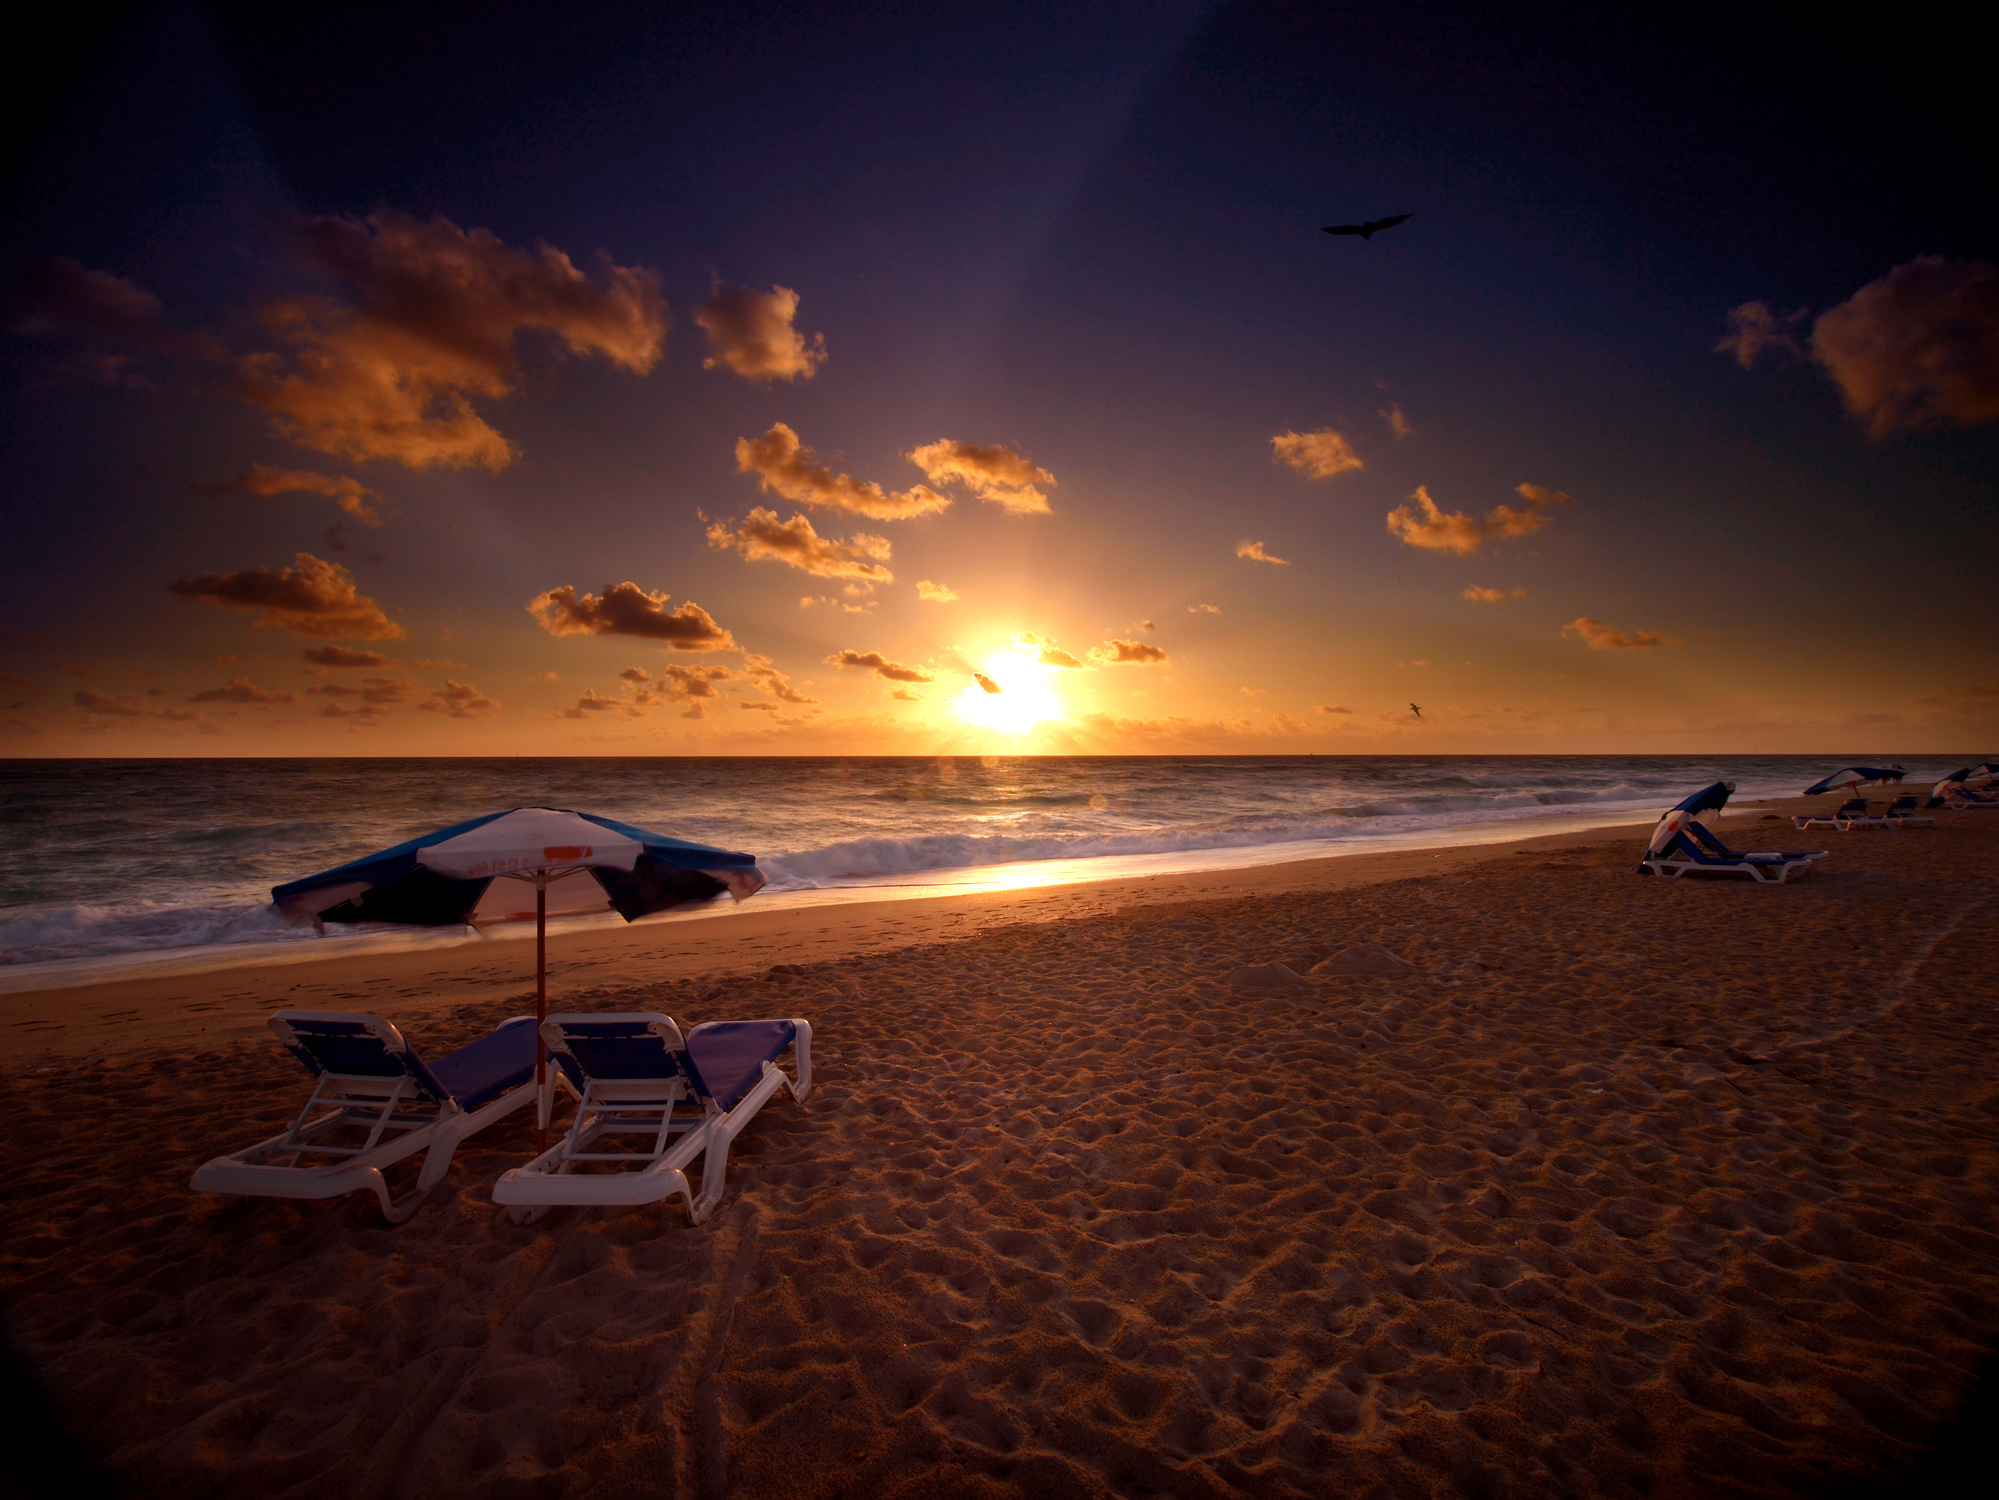 private beach area with rental umbrella and chairs at sunset, Palm Beach Shores Resort and Vacation Villas.